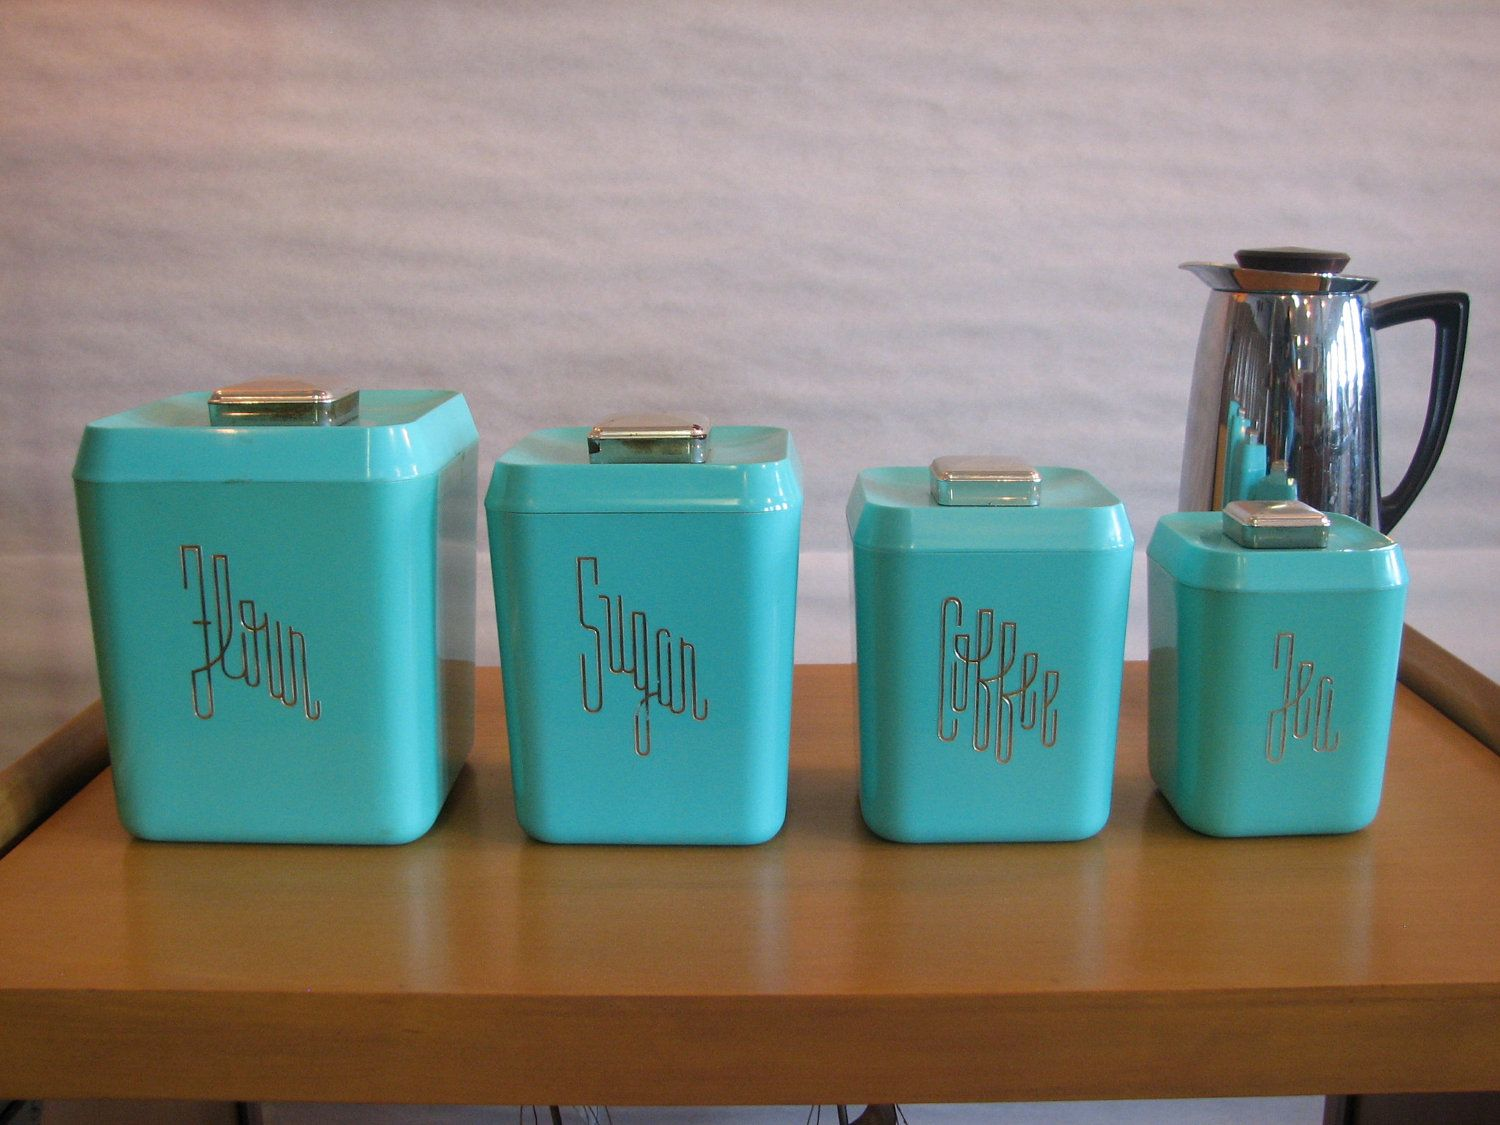 Mid Century Modern, Vintage 1950s, 60s Plastic Kitchen Canisters. $60.00, I  Love